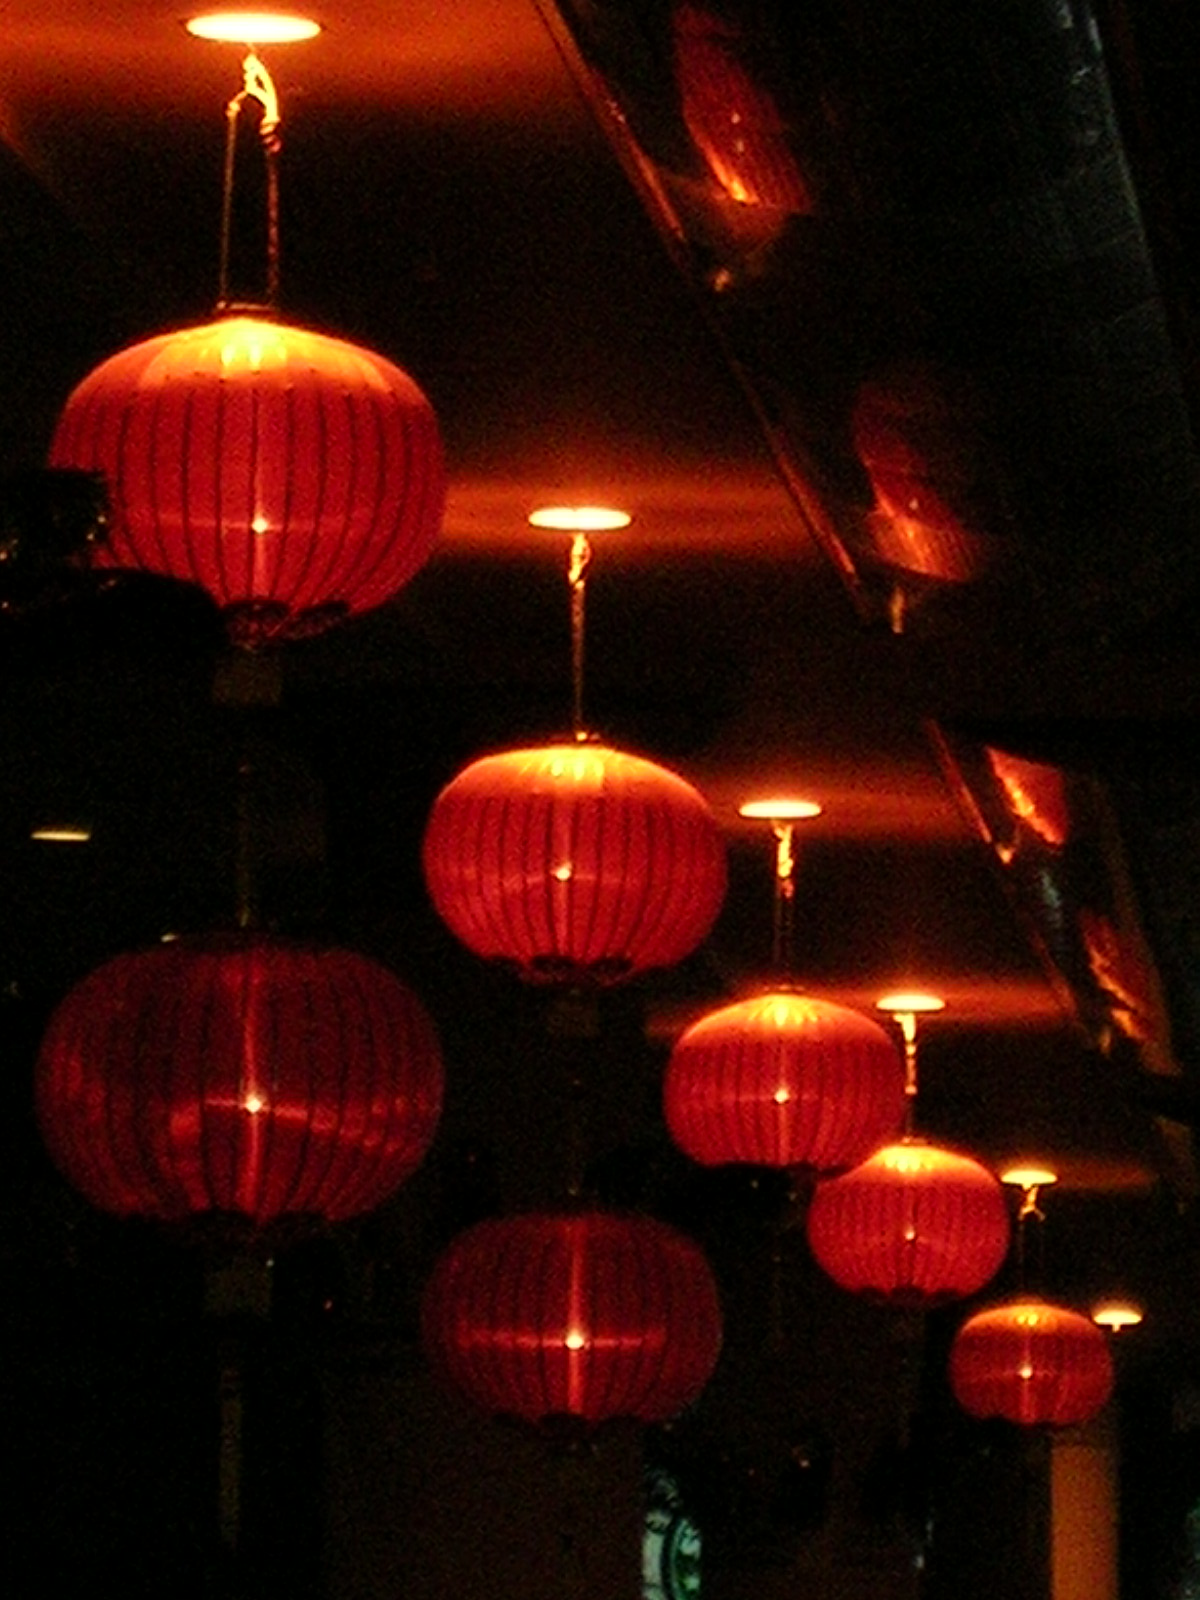 https://i0.wp.com/upload.wikimedia.org/wikipedia/commons/9/9e/Red_lanterns.JPG